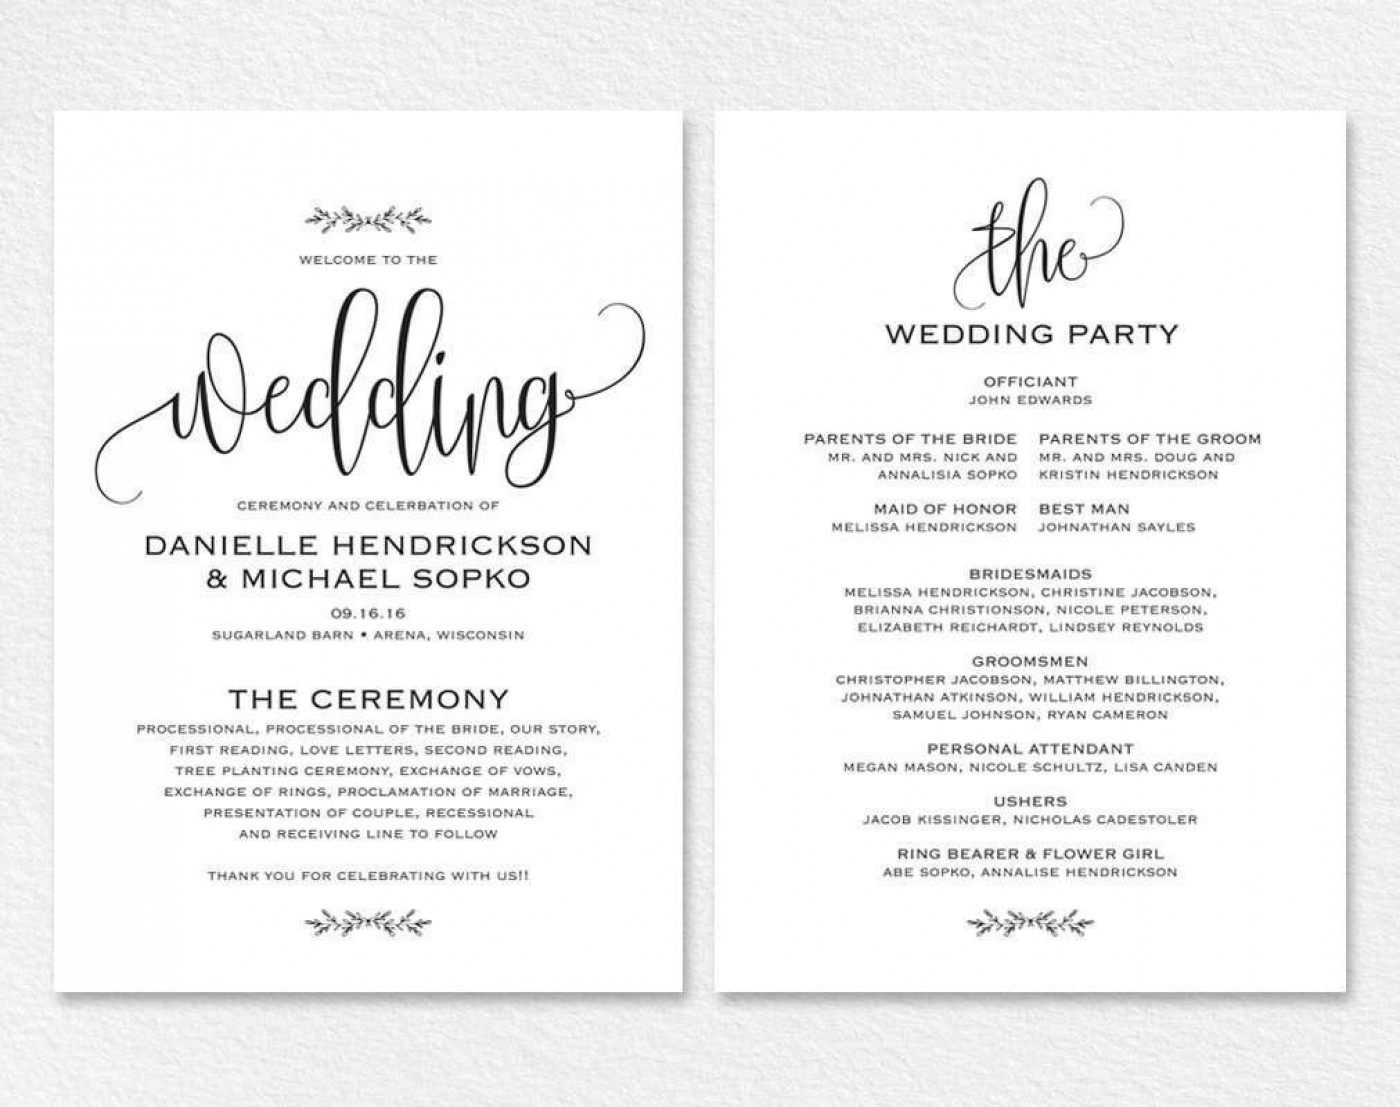 000 Remarkable Free Wedding Order Of Service Template Word Example  Microsoft1400